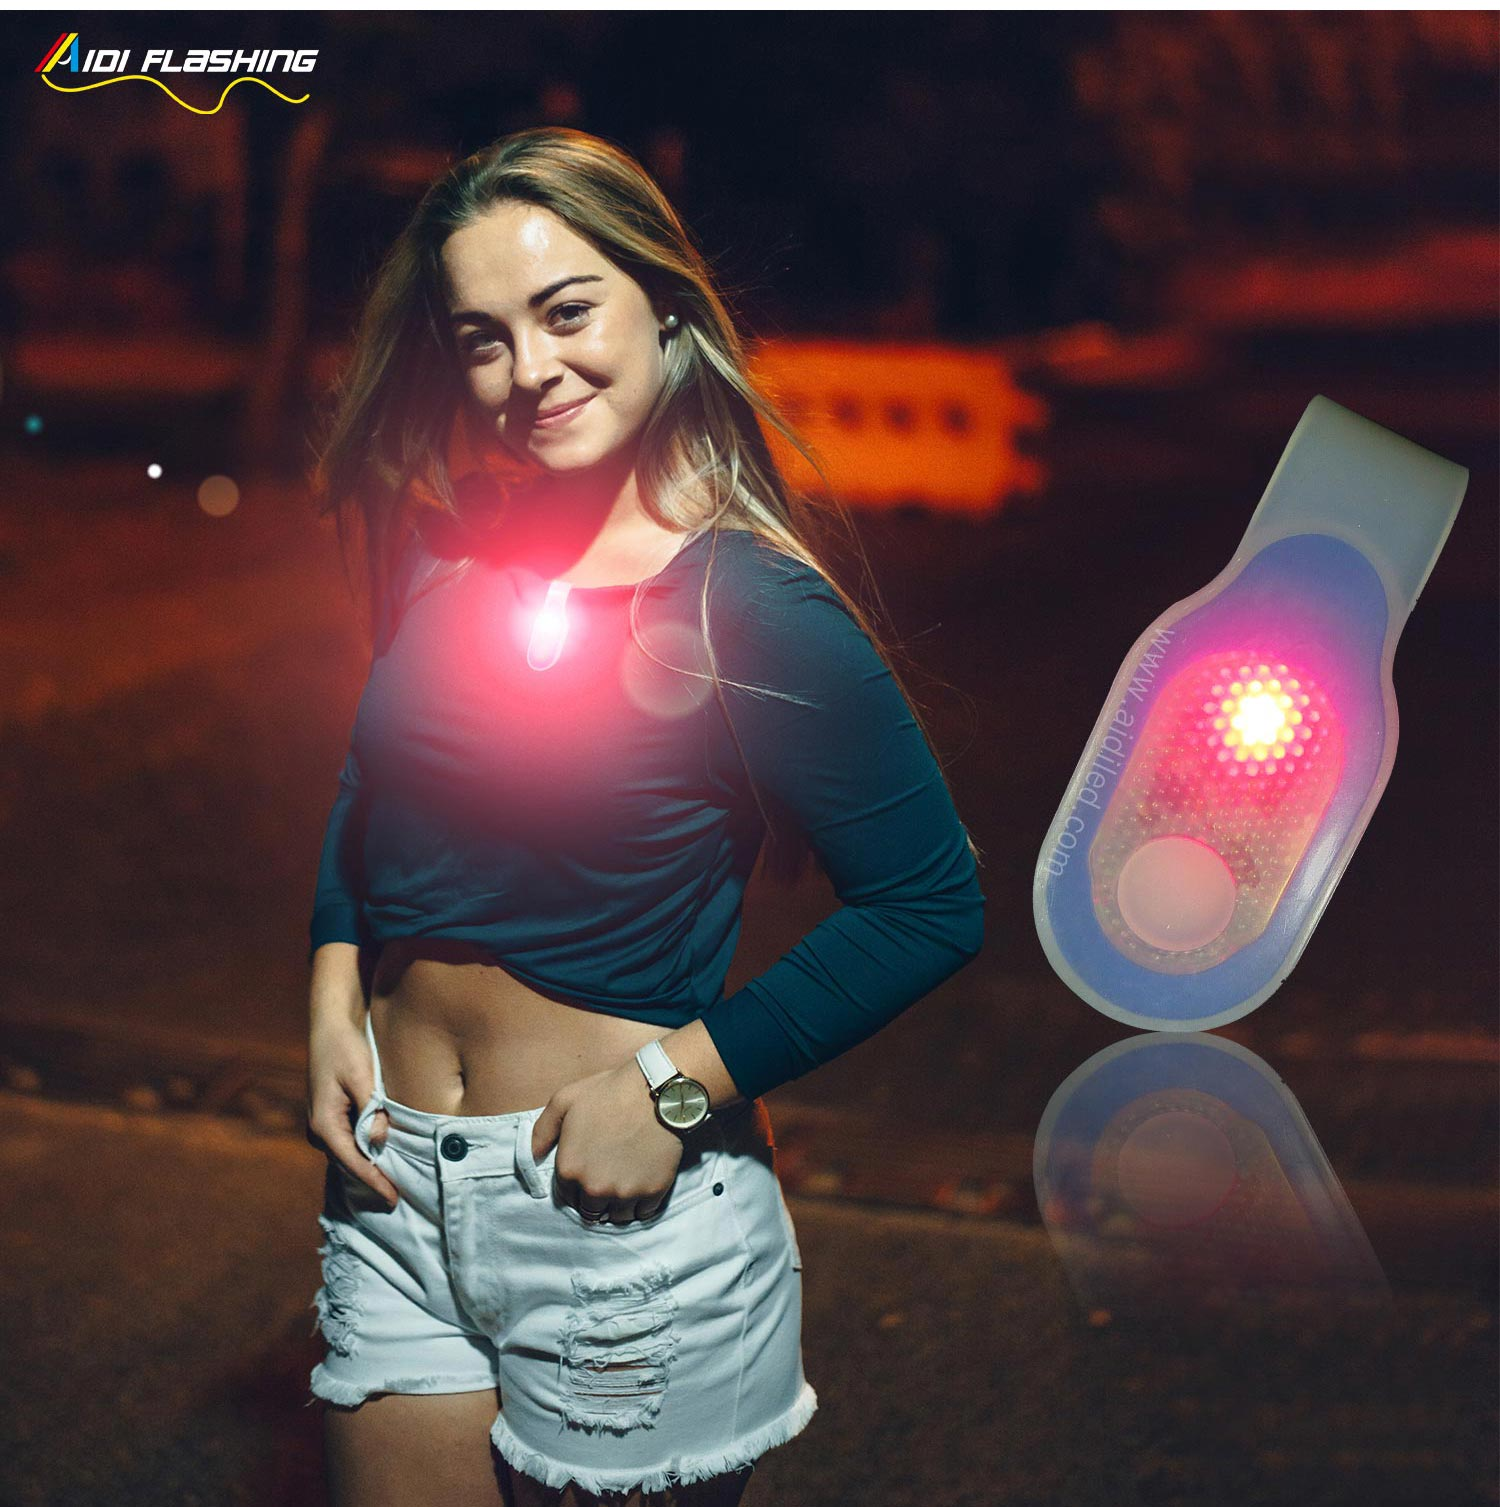 waterproof USB rechargeable LED magnet clip safety lights for runners AIDI-S5